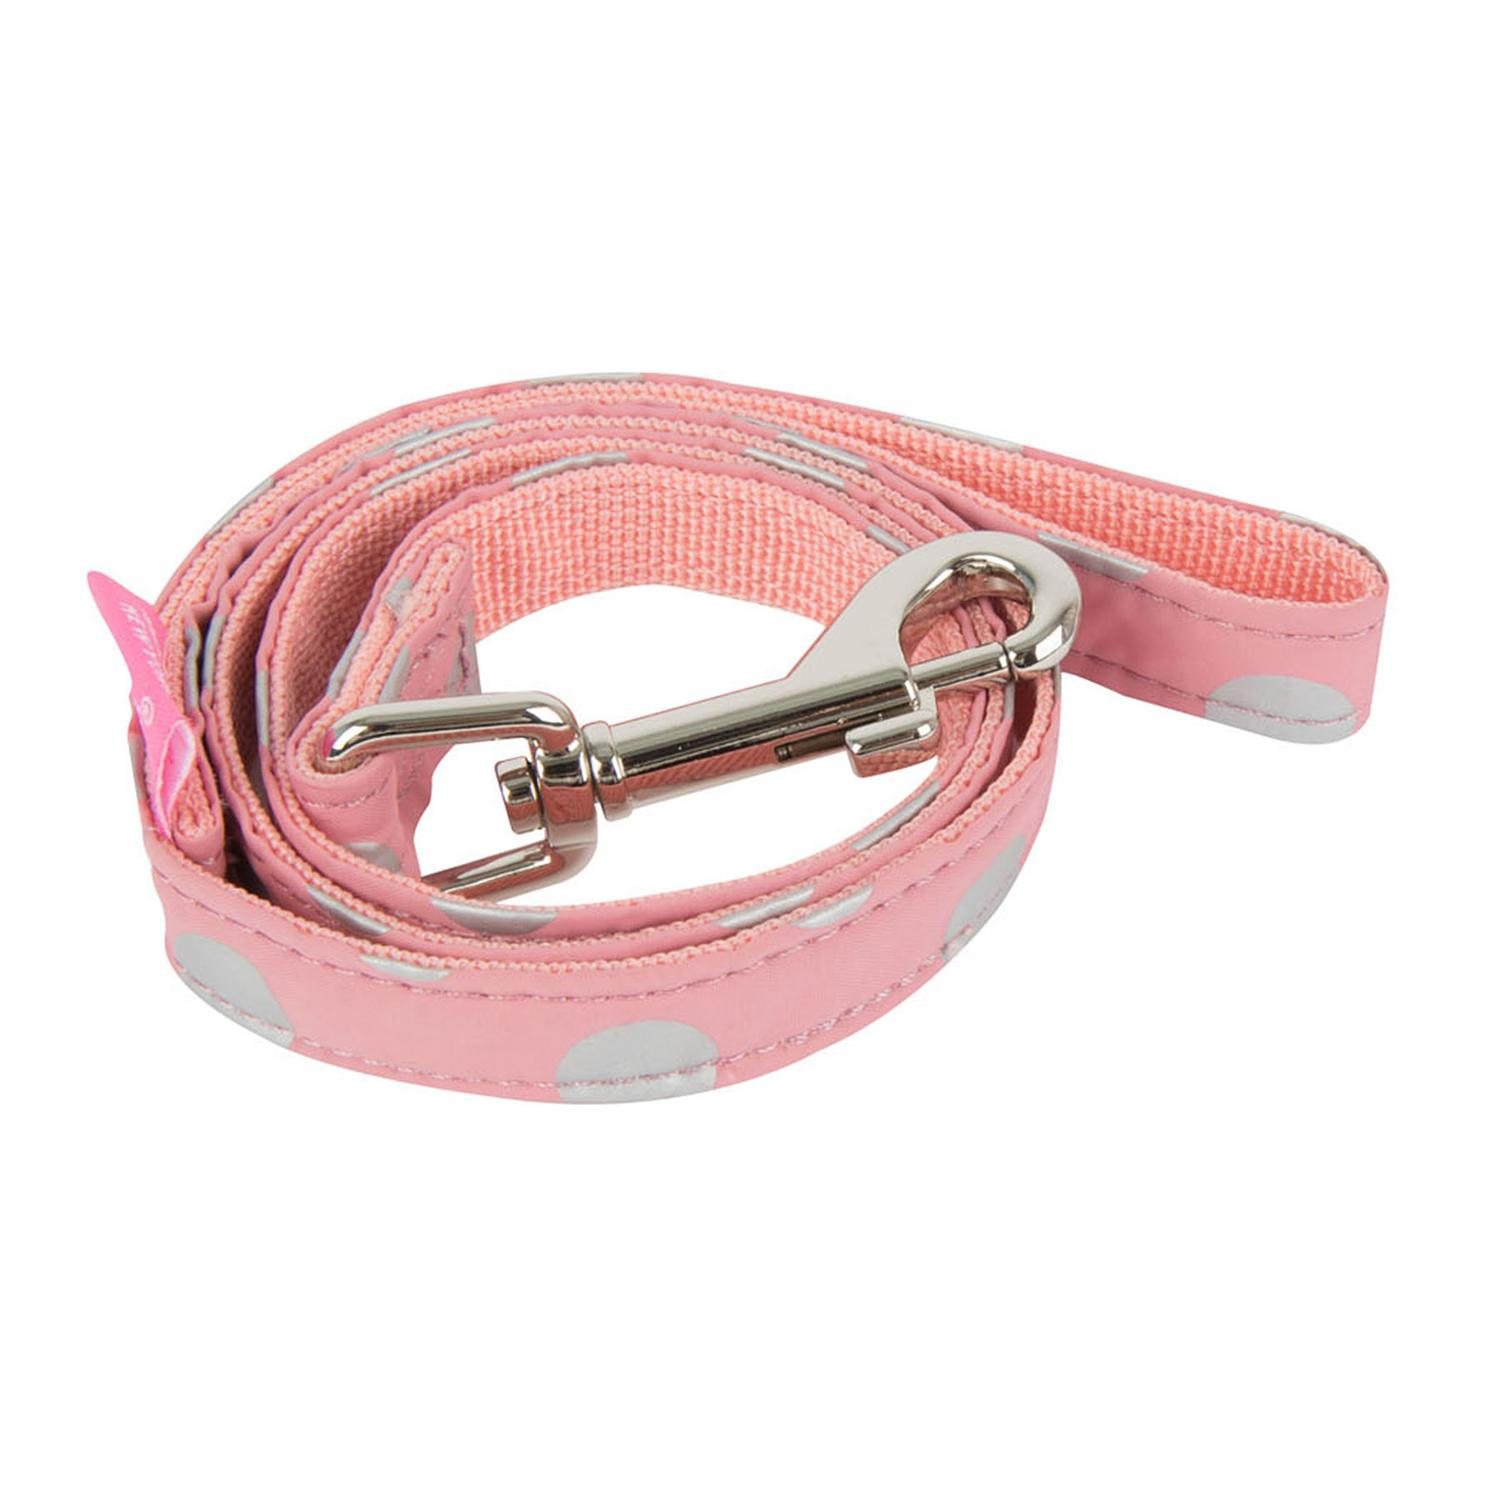 Chic Dog Leash by Pinkaholic - Pink